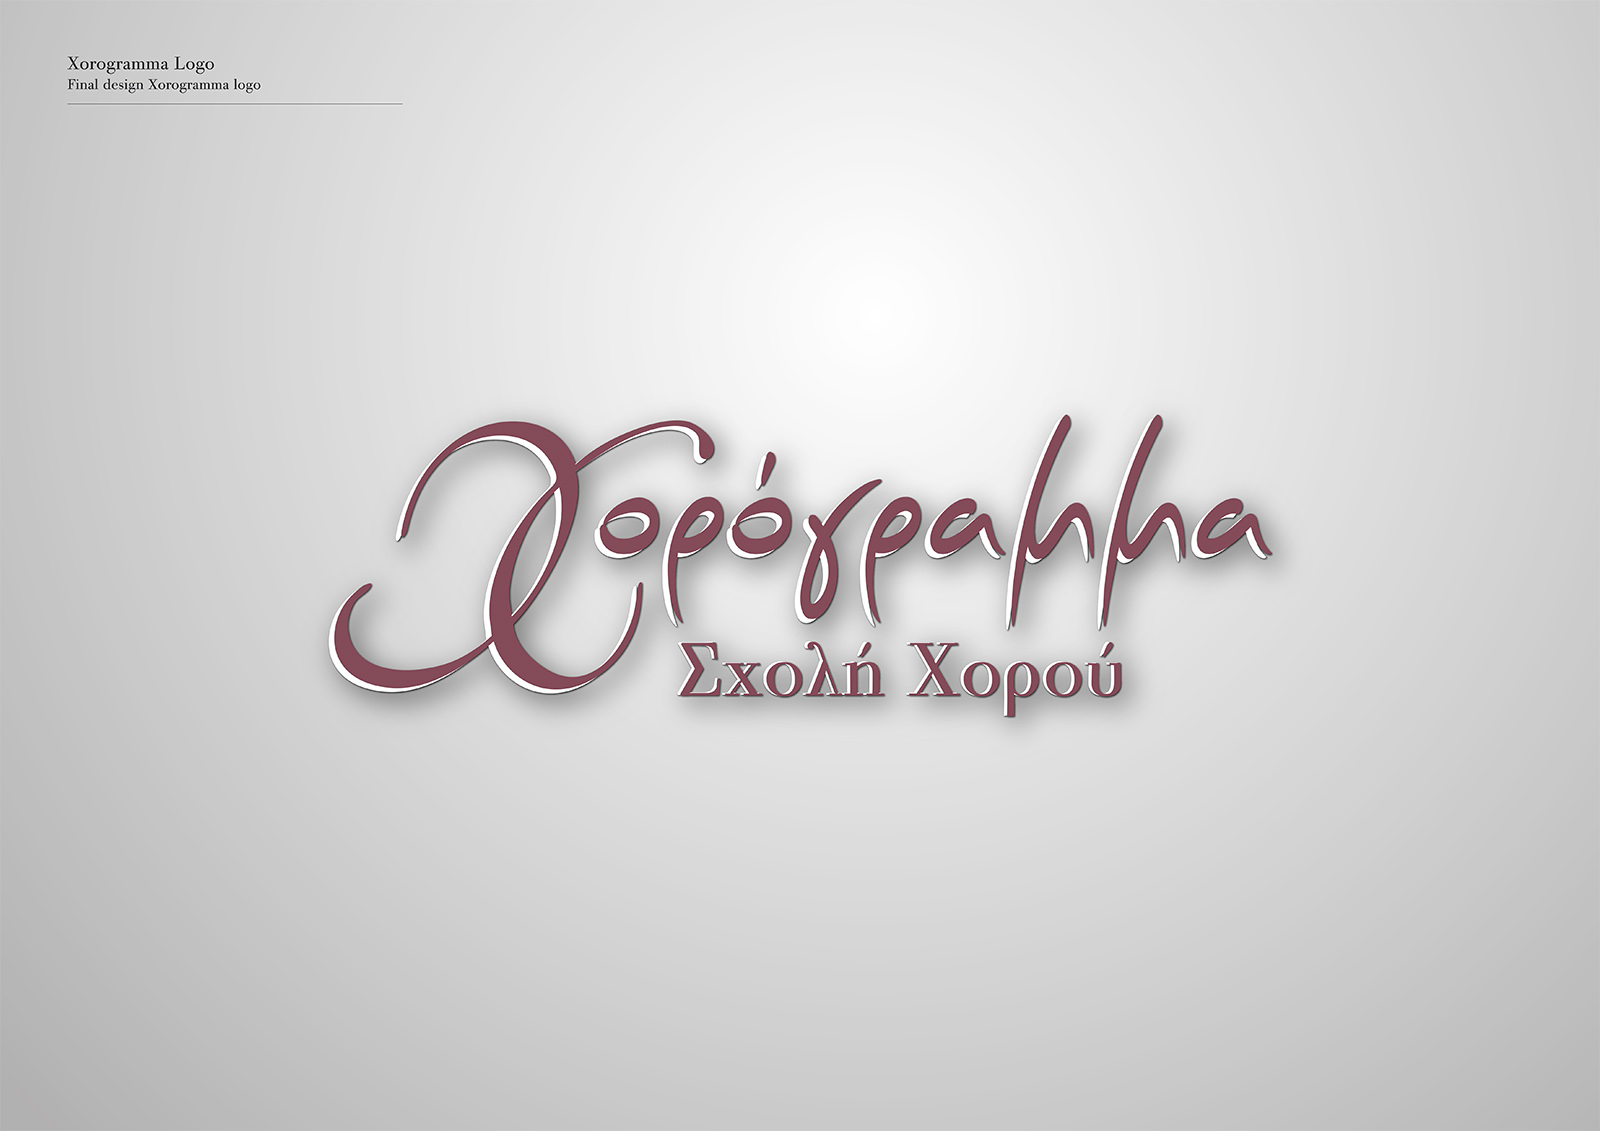 Corporate Identity Xorogramma_final_logo_yianart